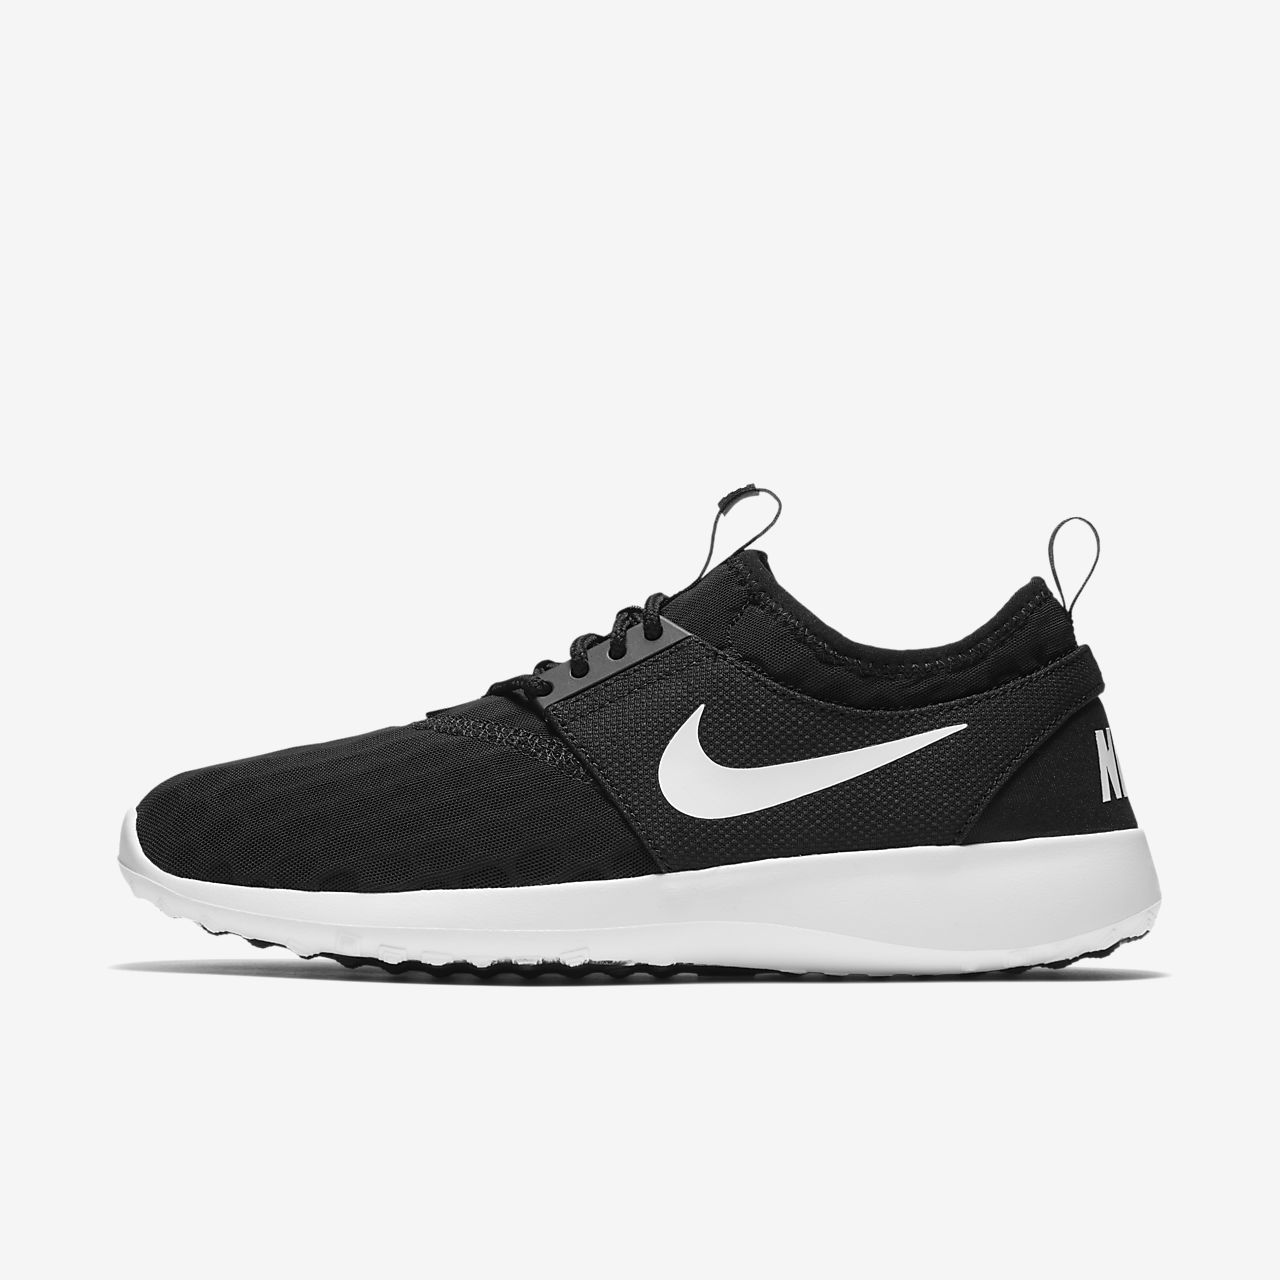 408c2413412e Low Resolution Nike Juvenate Women s Shoe Nike Juvenate Women s Shoe